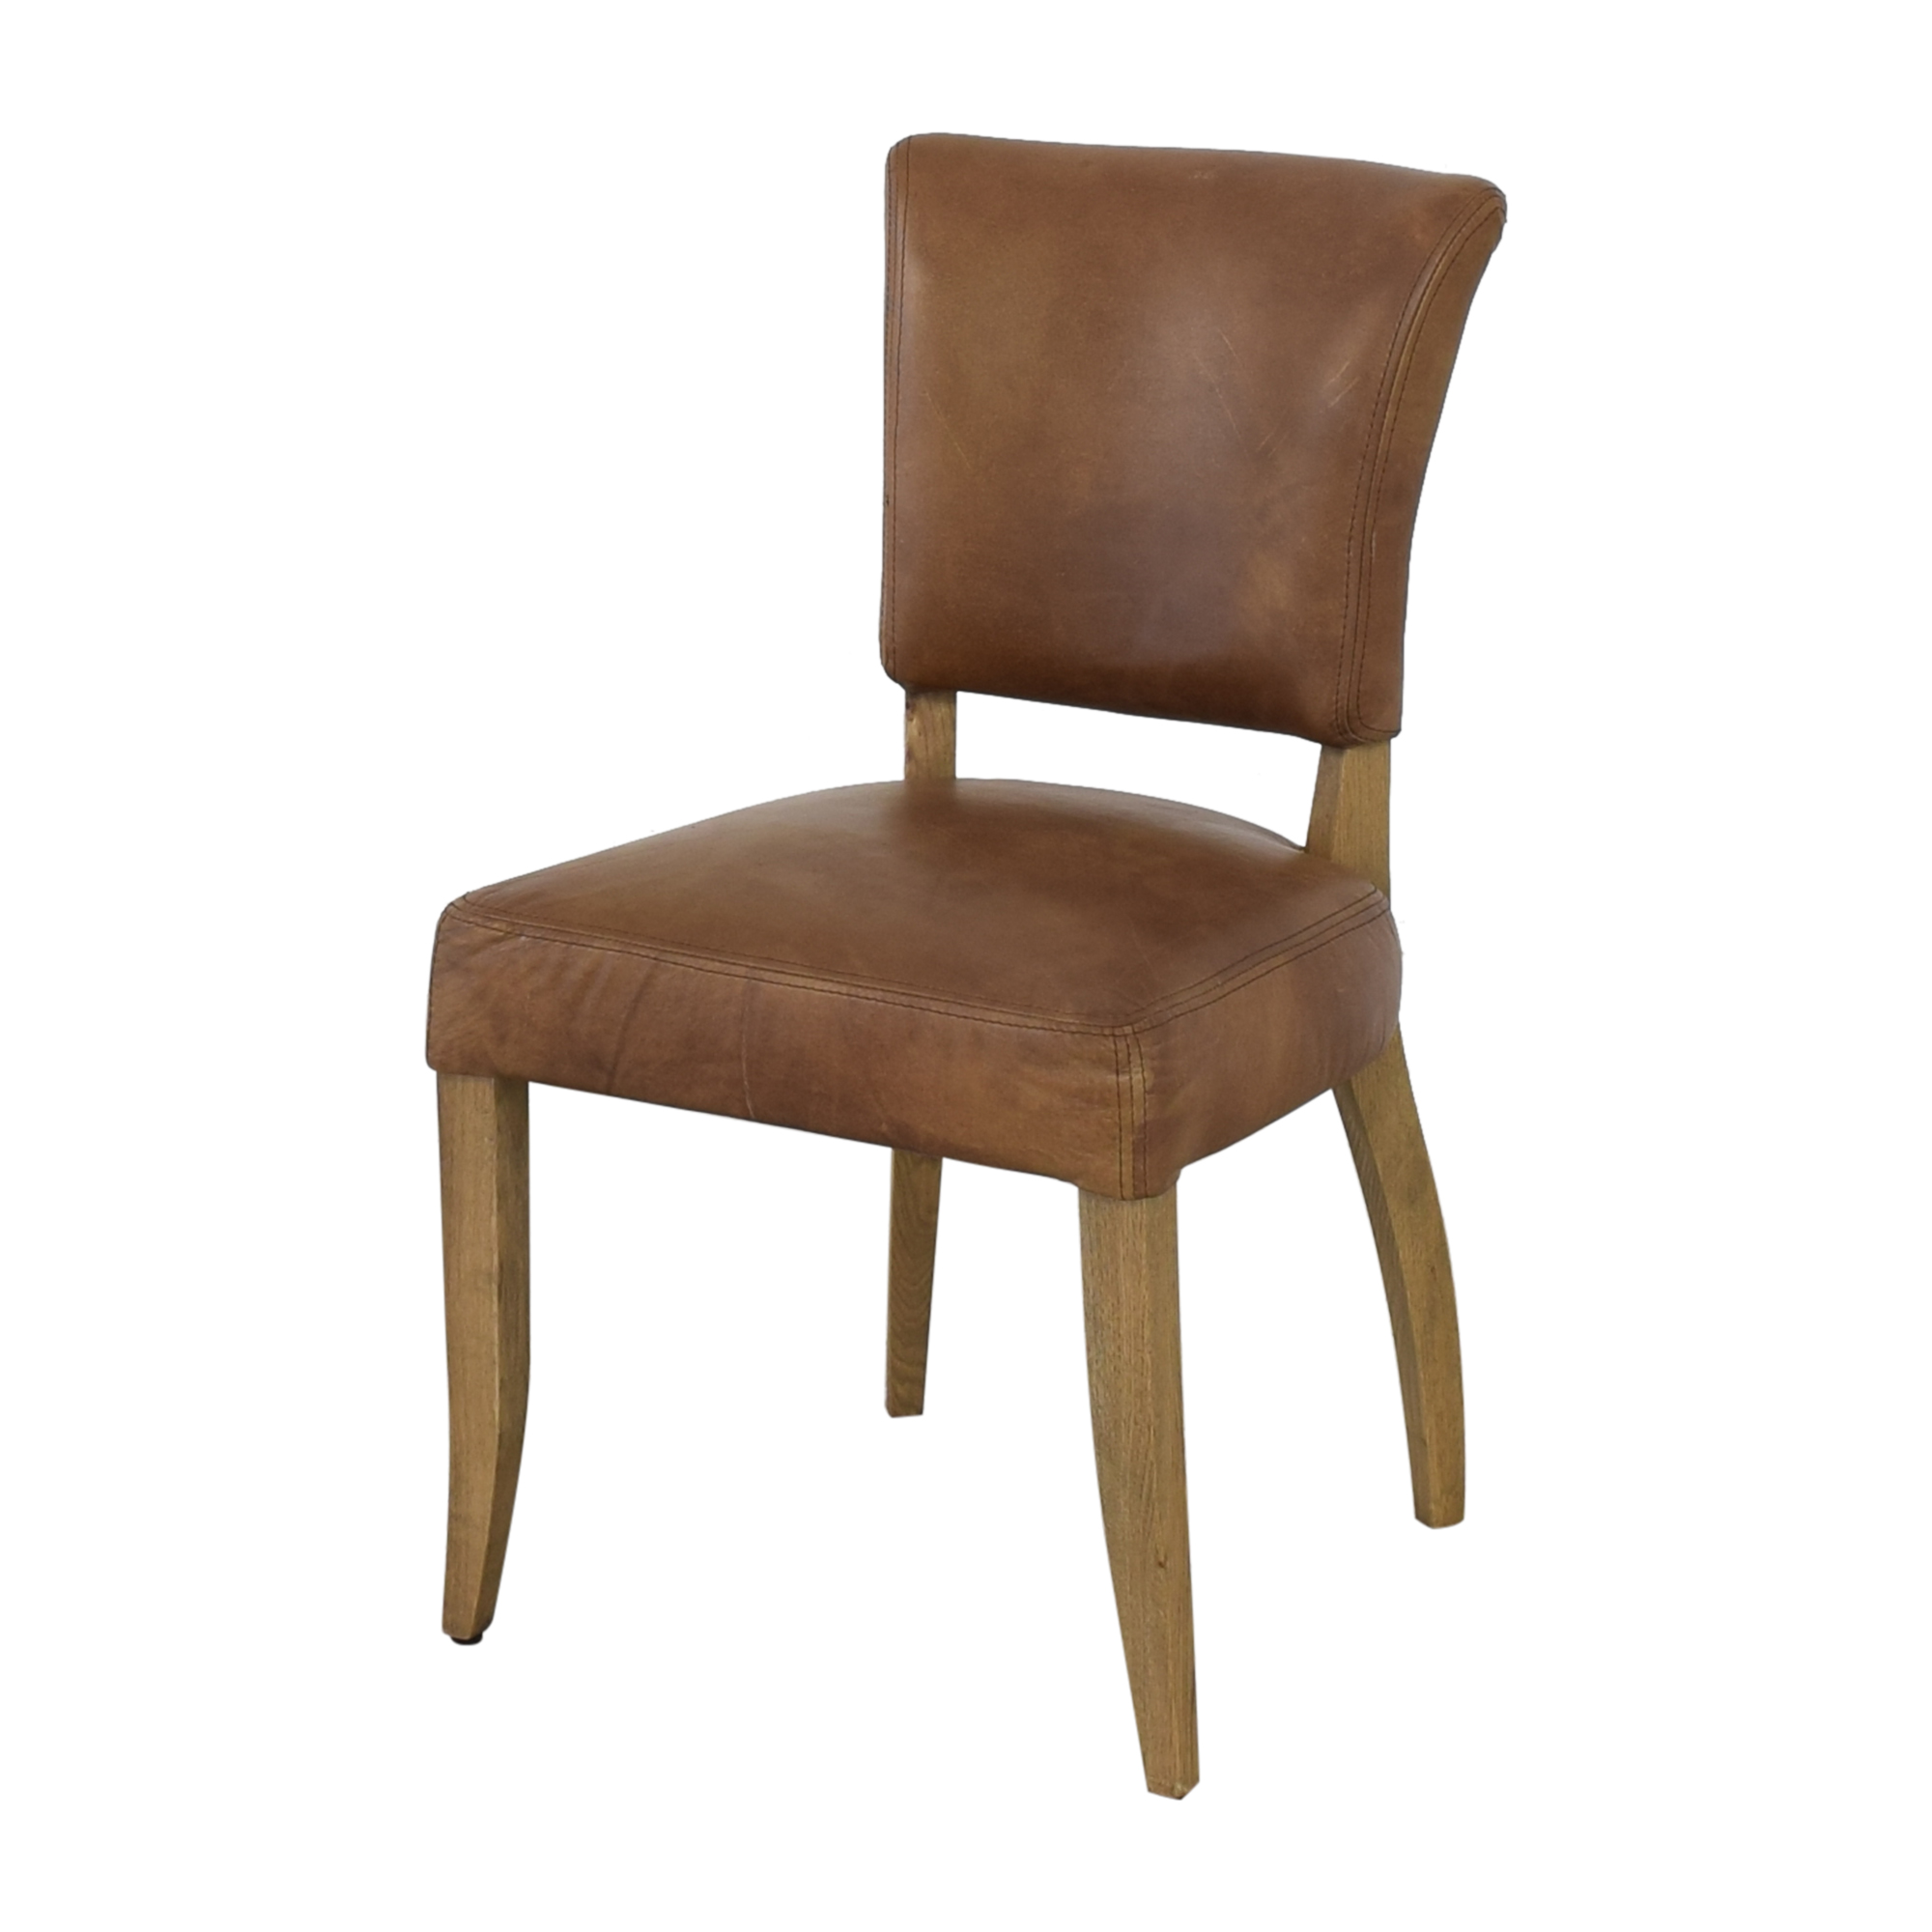 Restoration Hardware Restoration Hardware Adele Leather Side Chair ct